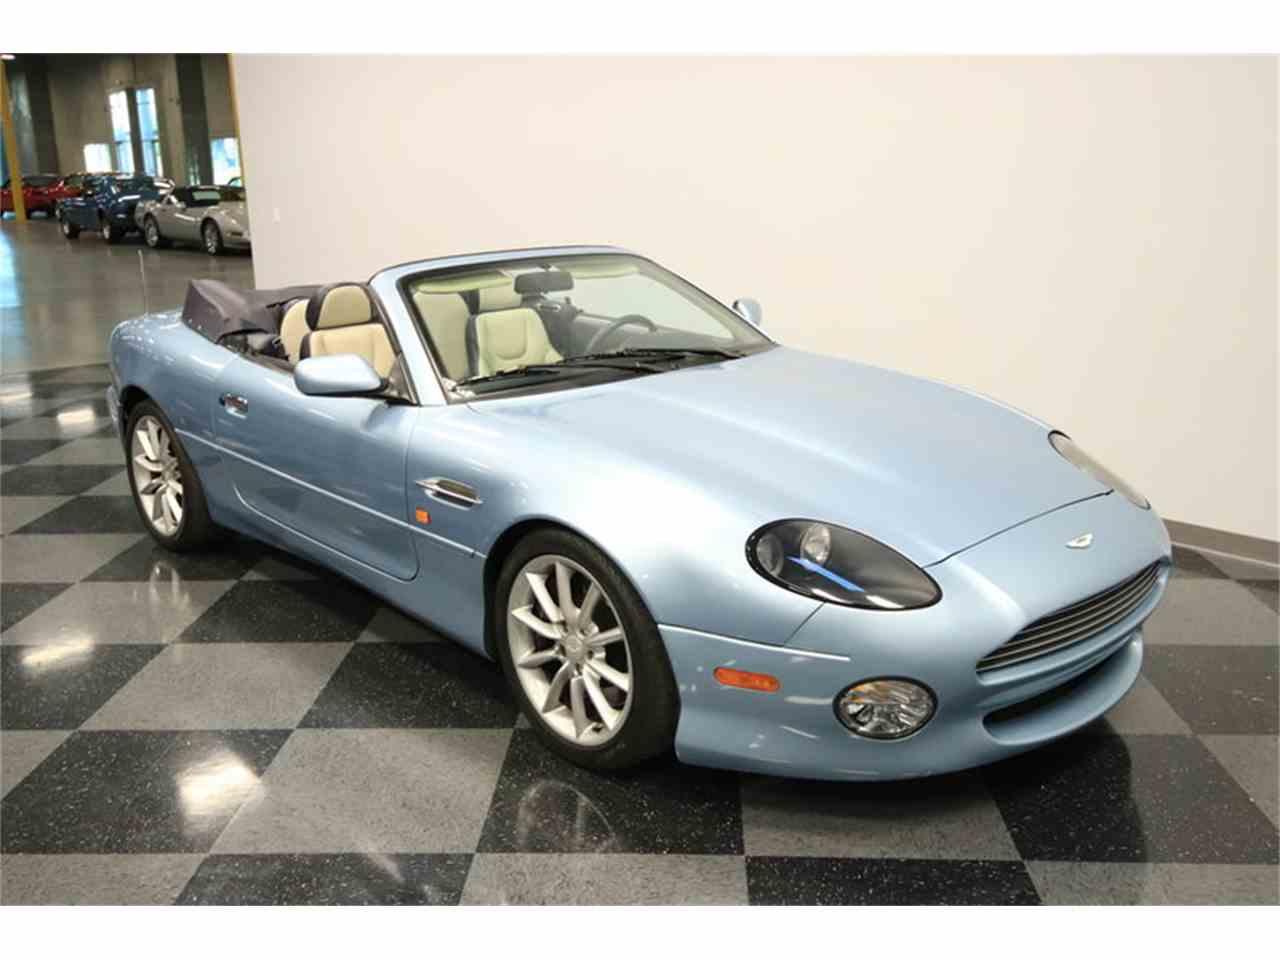 Large Picture of 2000 DB7 Vantage Volante located in Arizona Offered by Streetside Classics - Phoenix - M73B